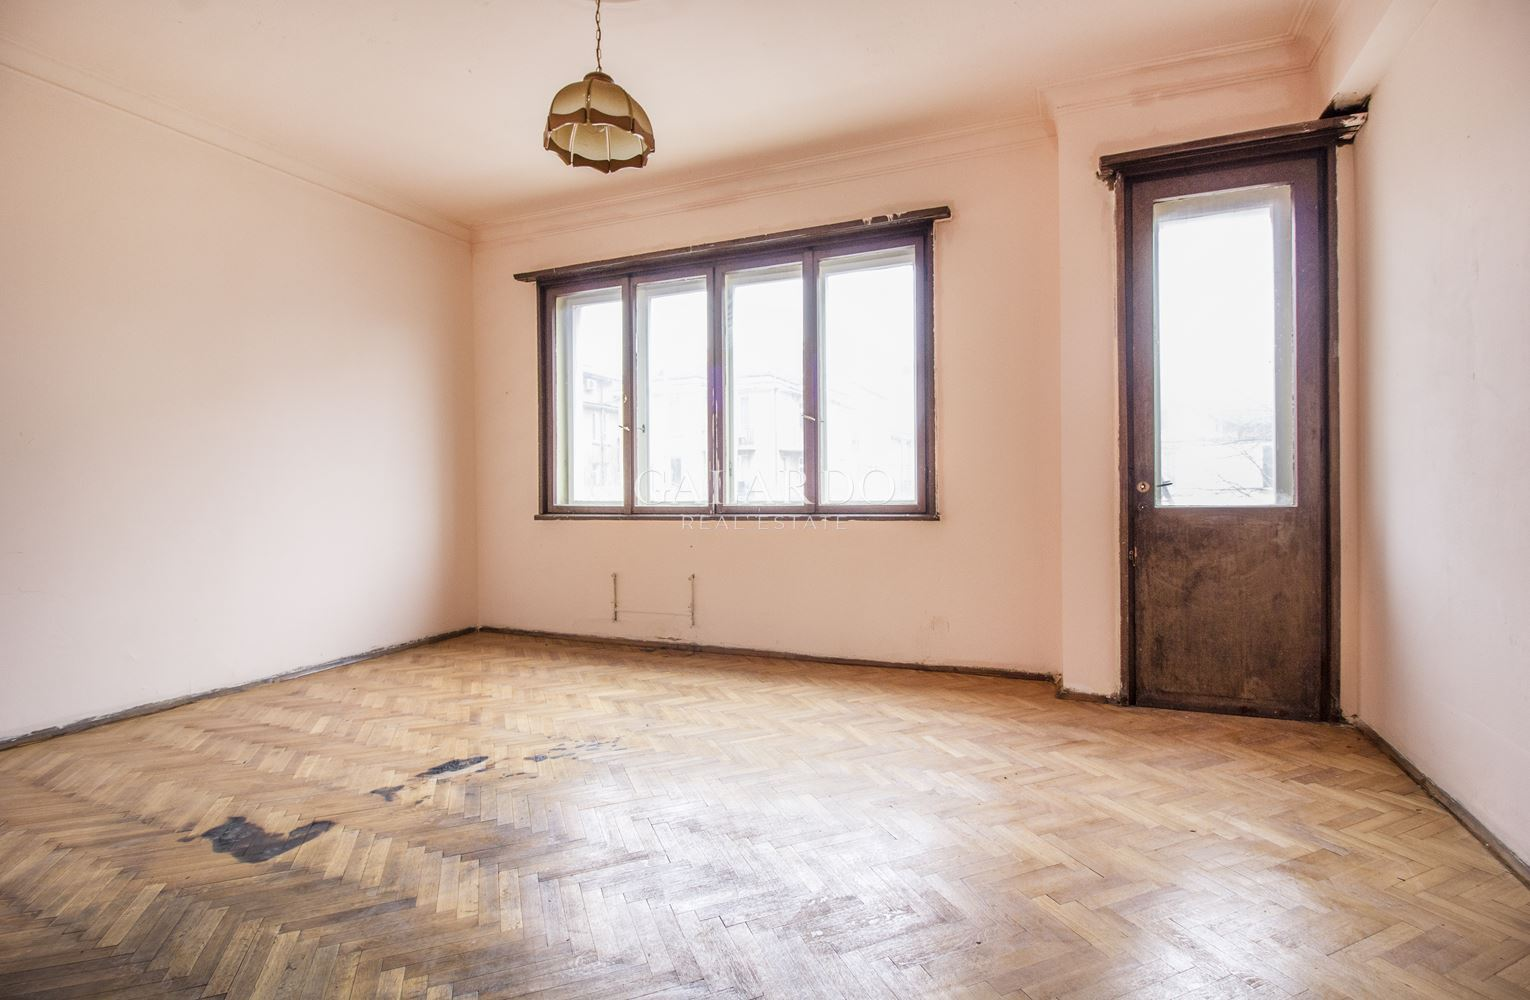 Spacious two bedroom apartment in the central parts of Sofia